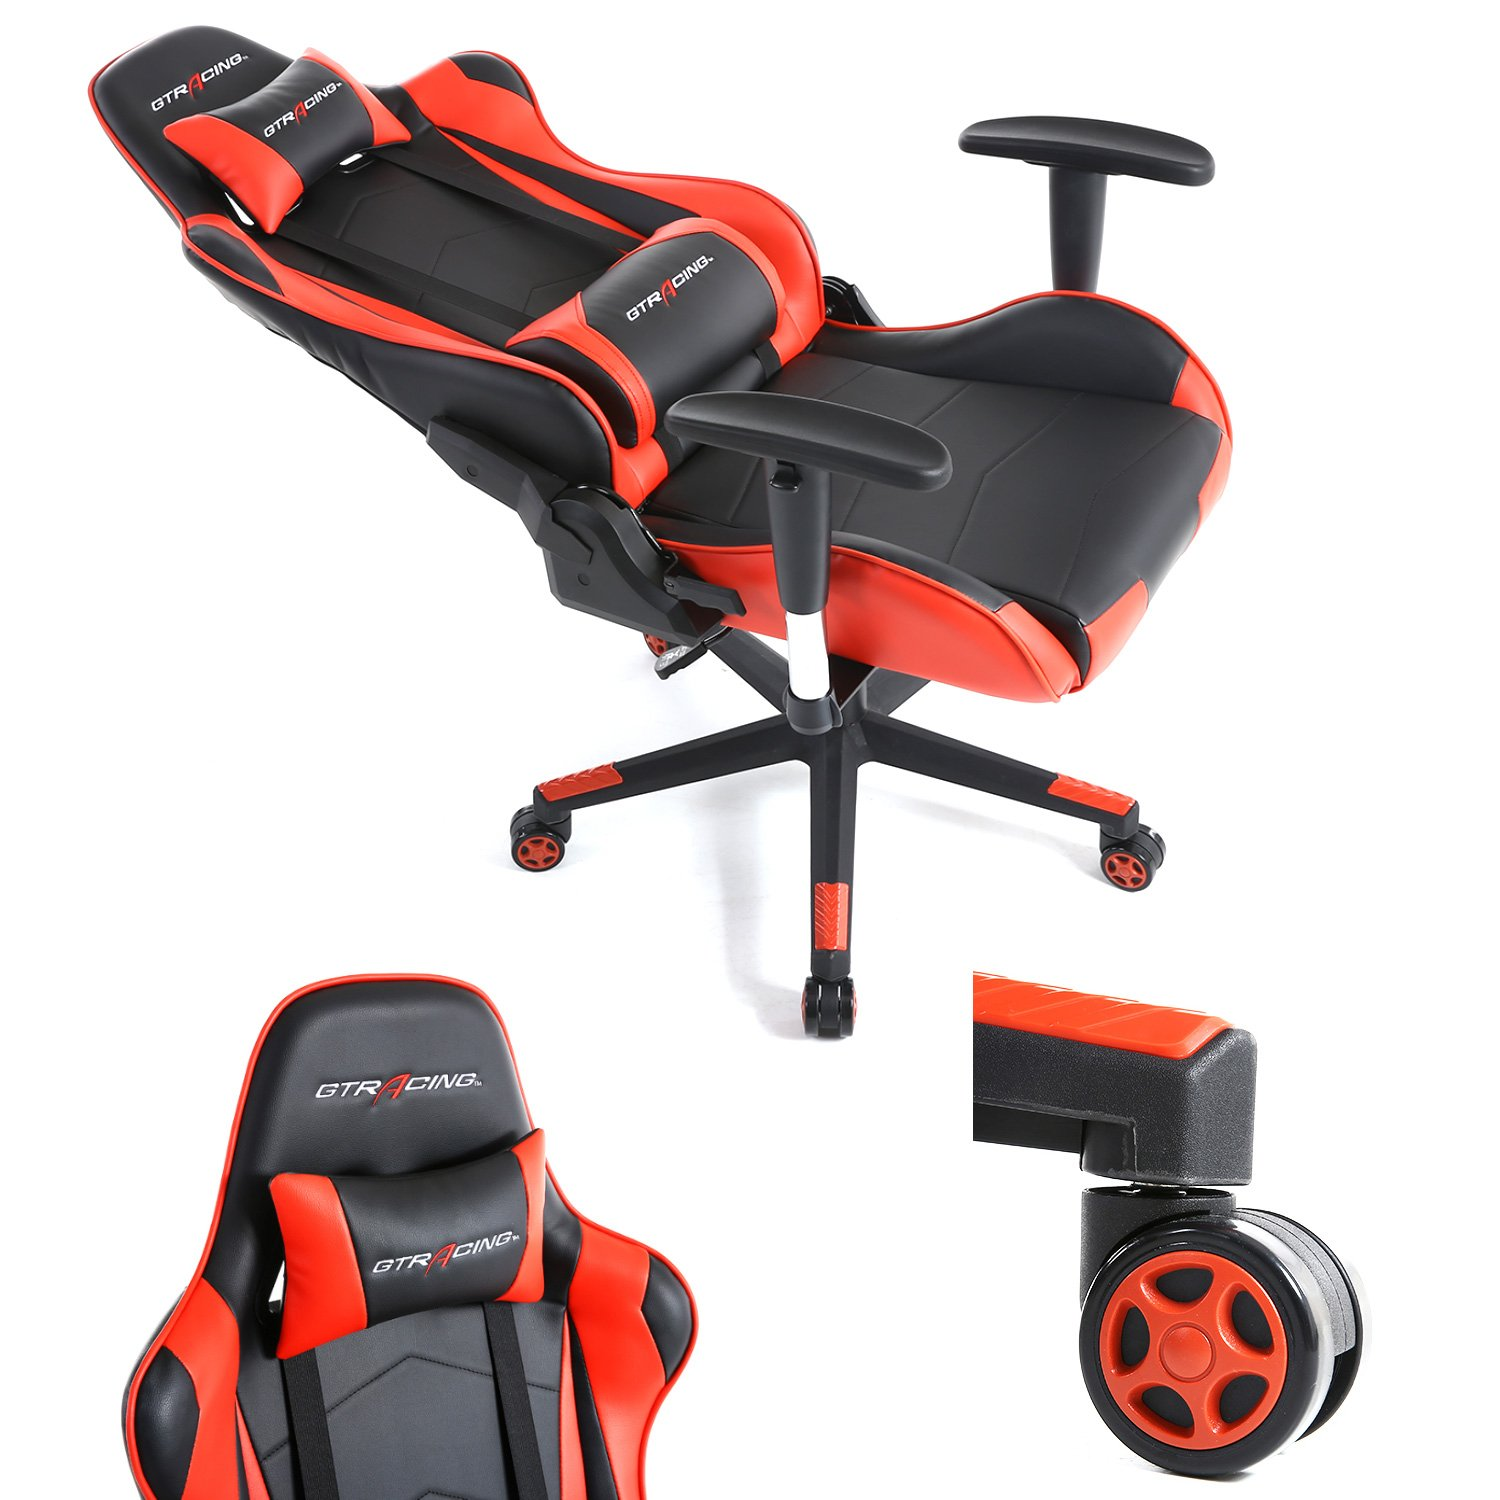 GTracing Ergonomic Office Chair Racing Chair Backrest and Seat Height Adjustment Computer Chair With Pillows Recliner Swivel Rocker Tilt E-sports Chair (Black/Red) by GTRACING (Image #6)